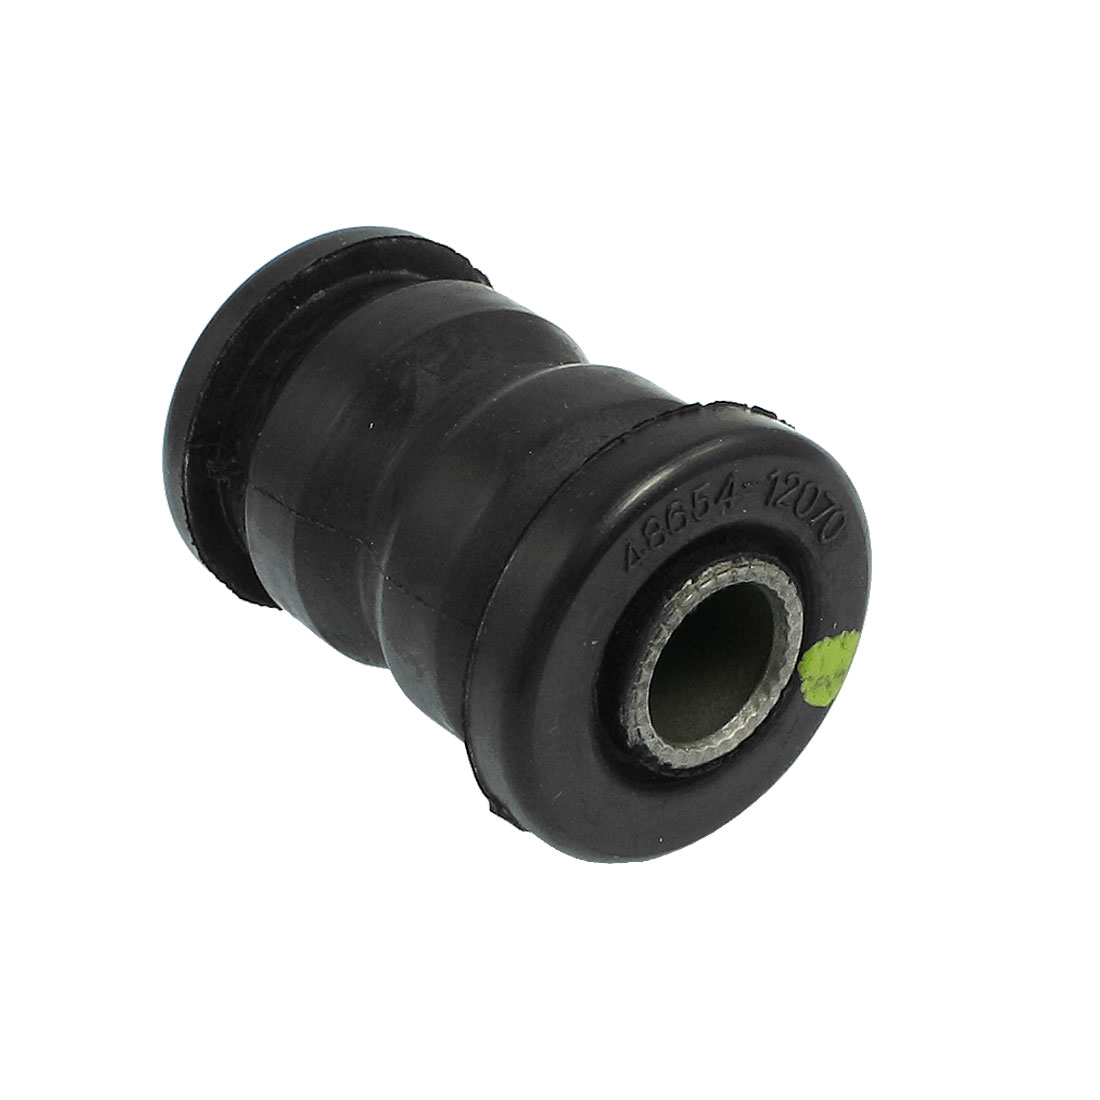 Auto Car Suspension Lower Arm Bushing for Toyota Corolla Compact Liftback Wagon